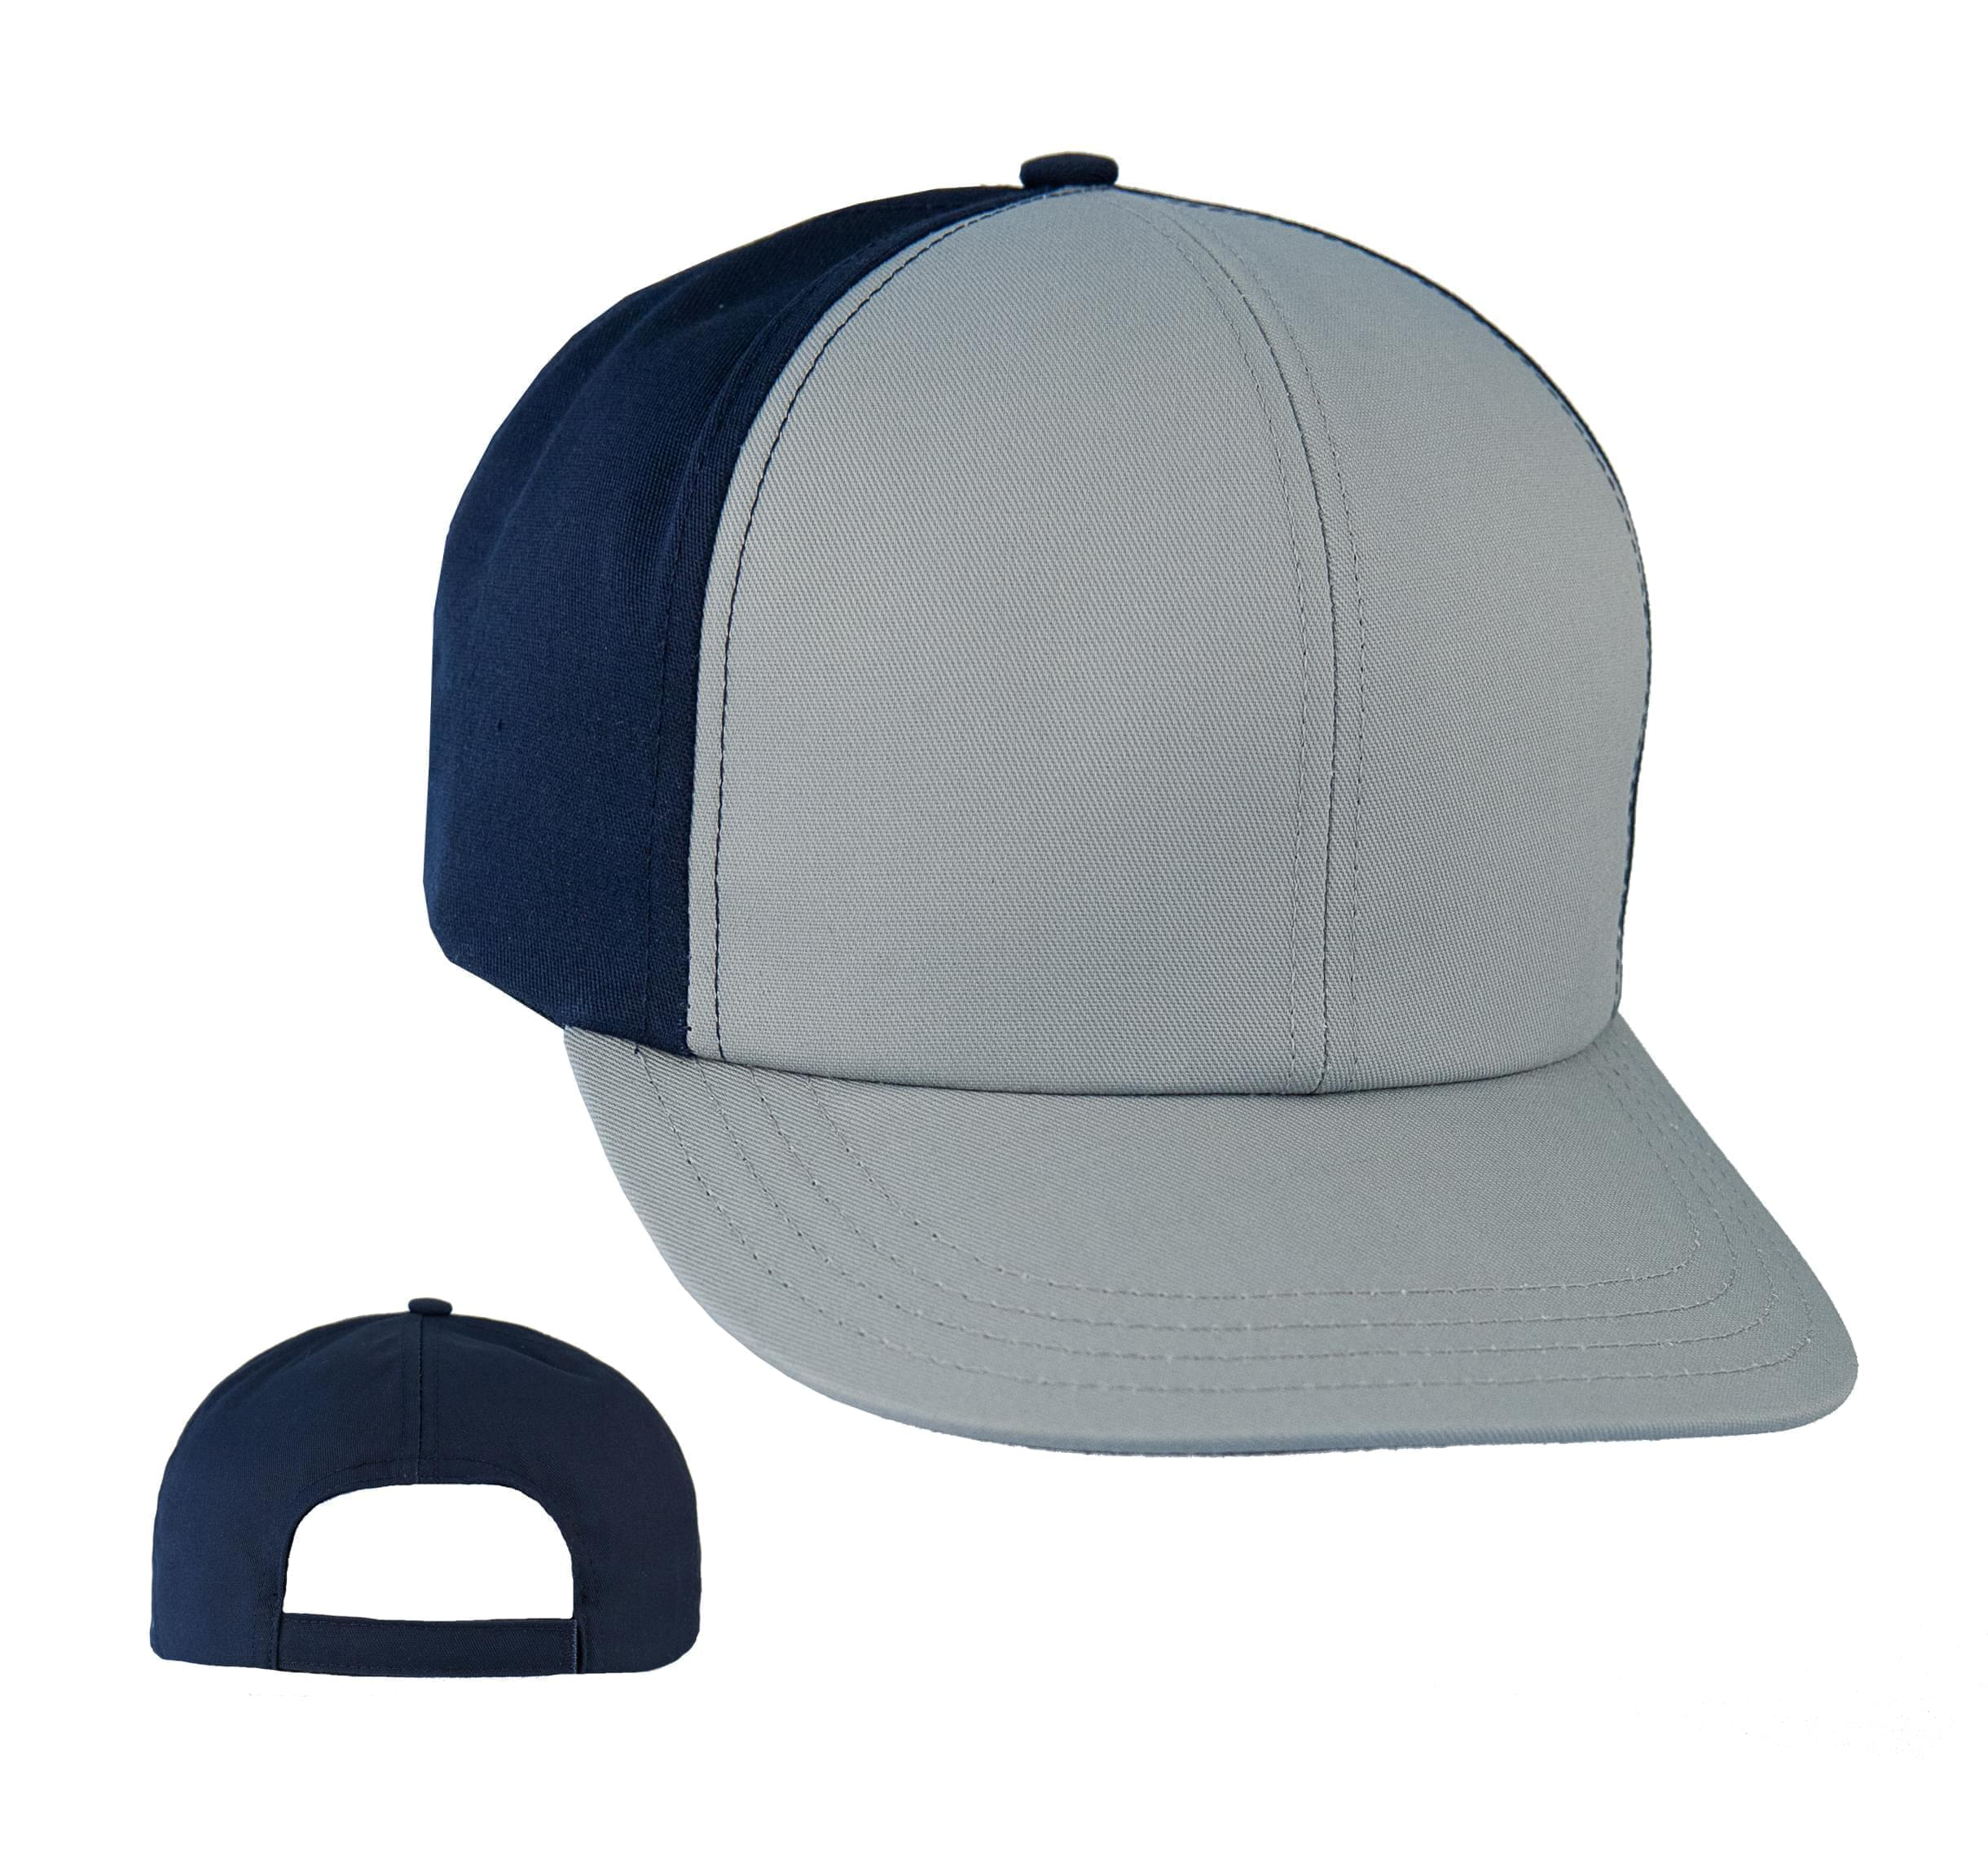 blank u s a made baseball hats constructed cotton twill